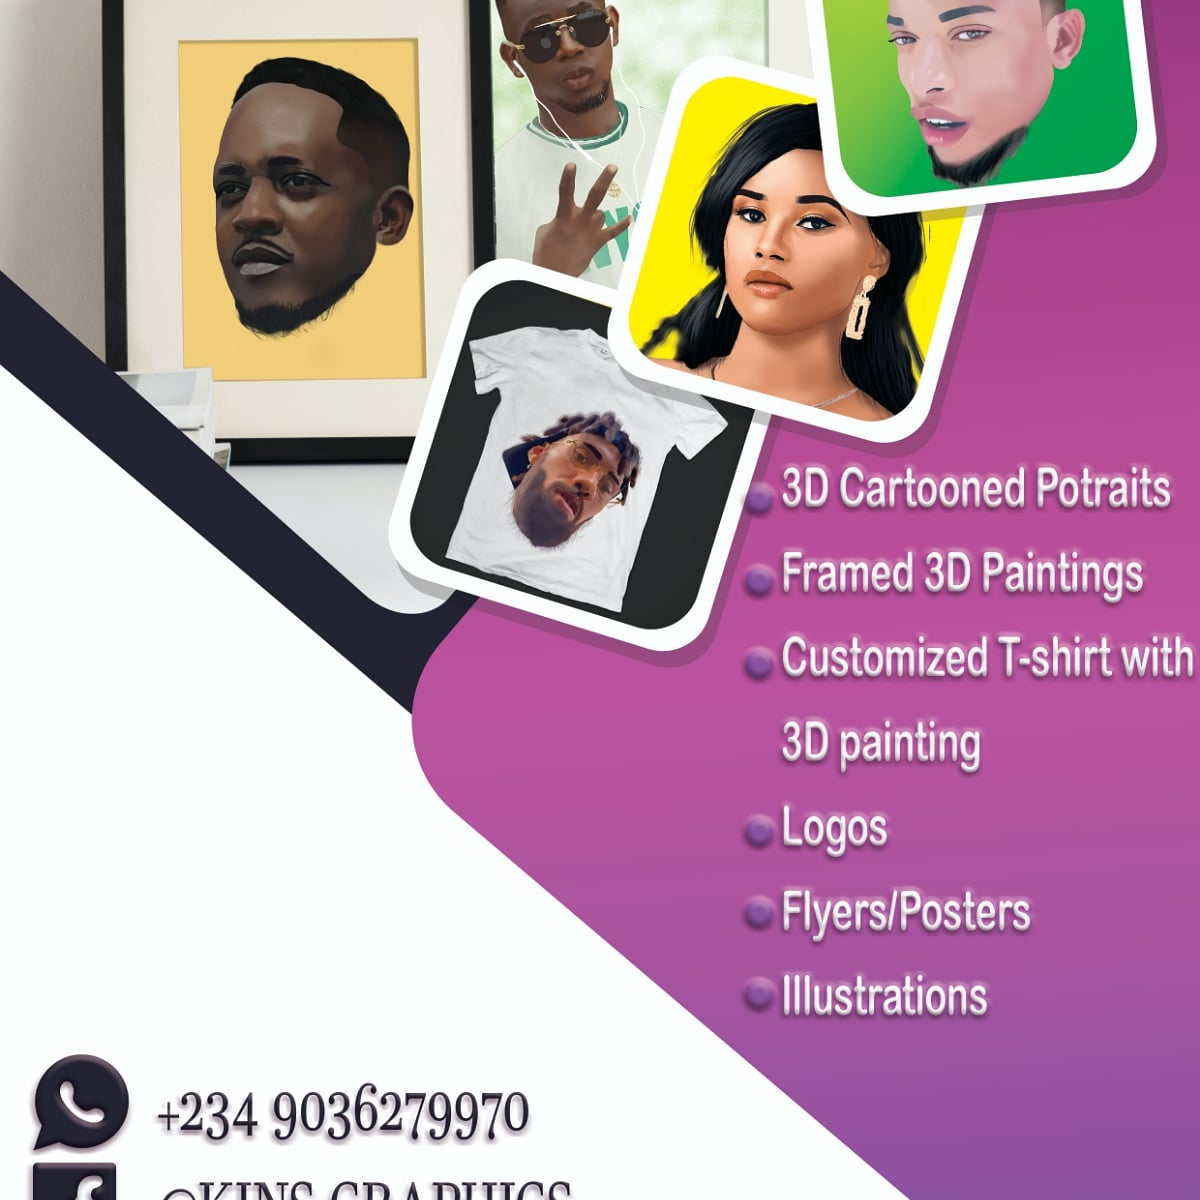 DM for inquiries and commissions #flyer #graphicdesign #potrait #potraitsketch #frame #framedart #decoration #beauty #beautiful #outfit #outfitideas #clothes #tshirtdesign #tshirt #summer #summervibes #freelancers #cute #drawing #pet #familylovepic.twitter.com/5ElfMqUJcL